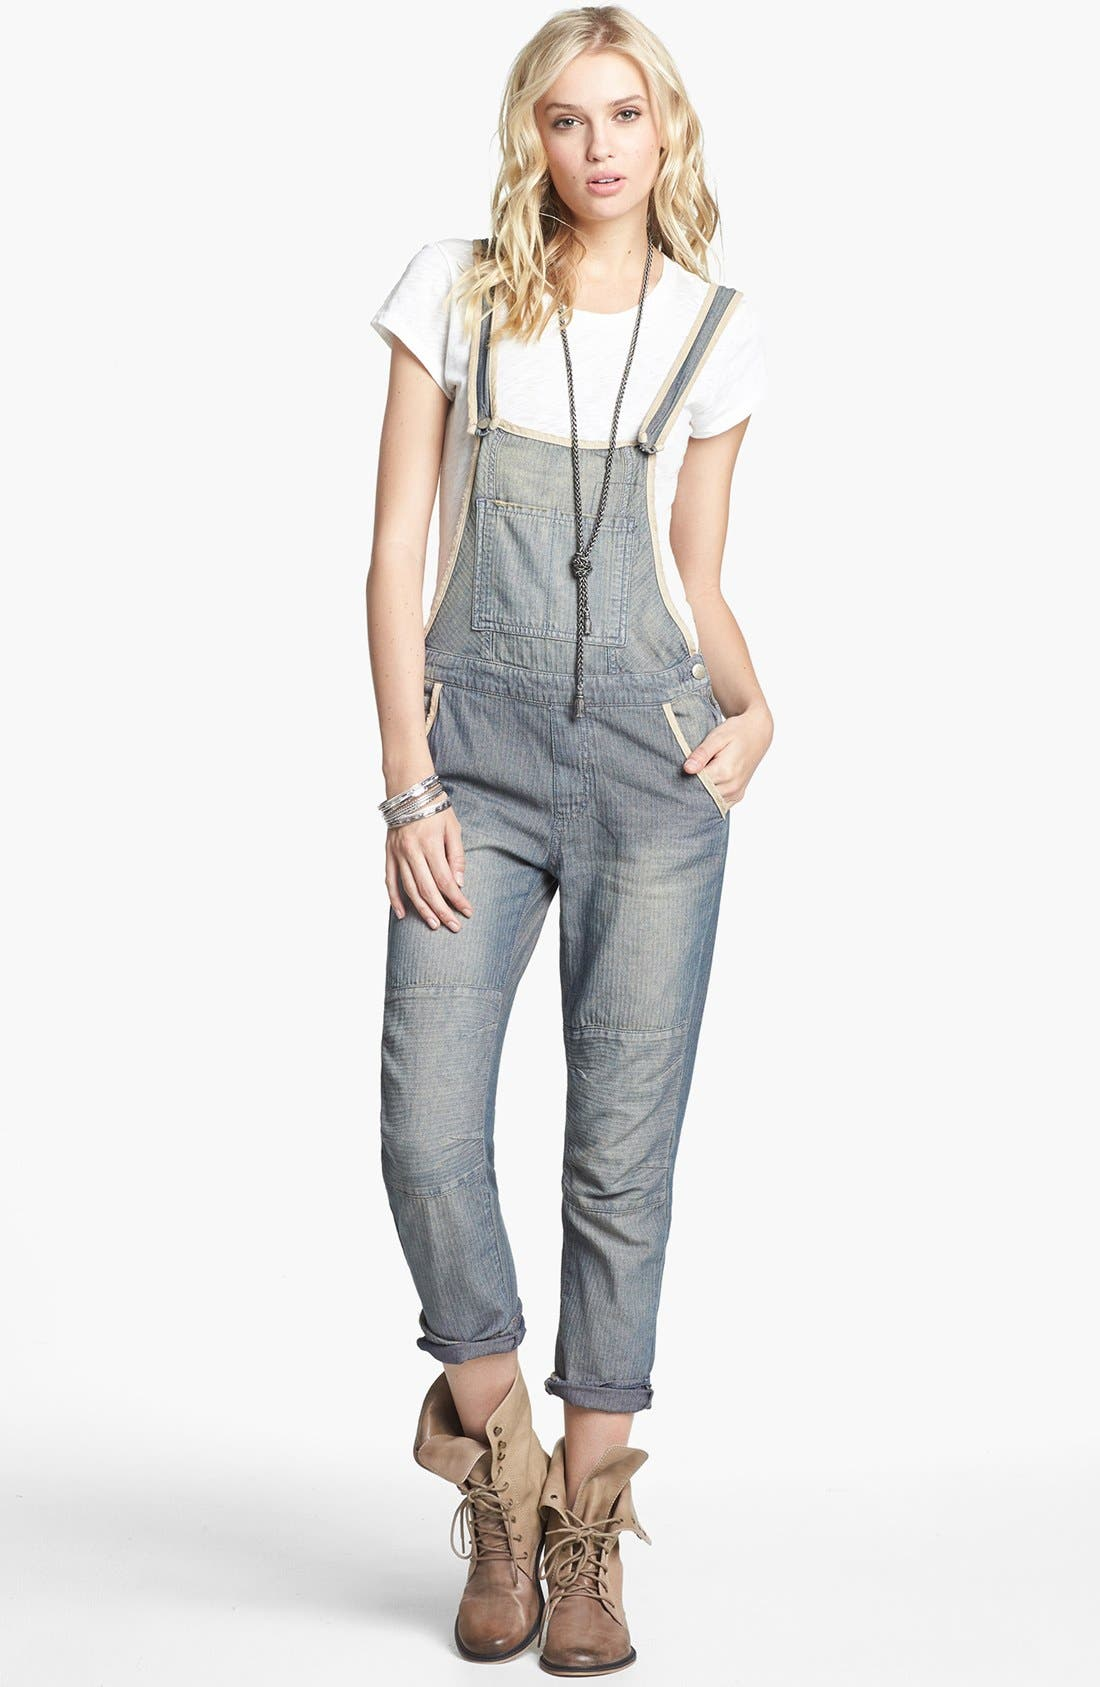 Main Image - Free People 'Thomas' Faded Denim Overalls